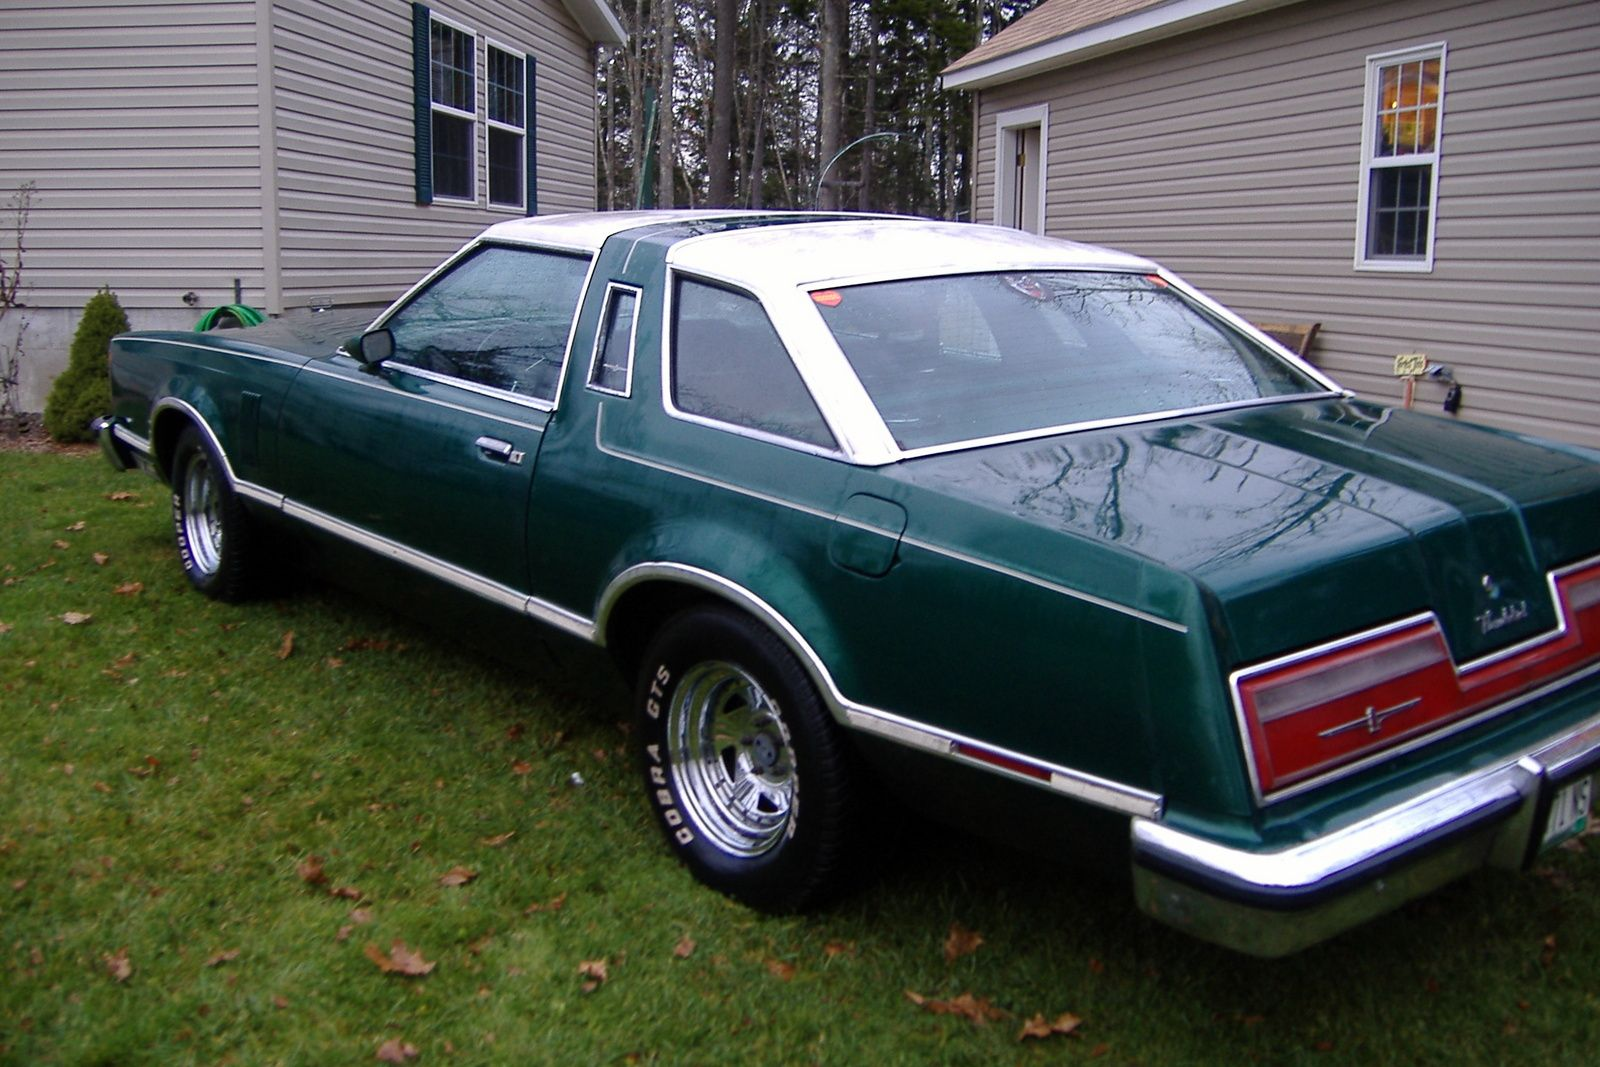 hight resolution of blacktie64 s 1977 ford thunderbird my grandma had one just like it spartan green with white leather seats need me one